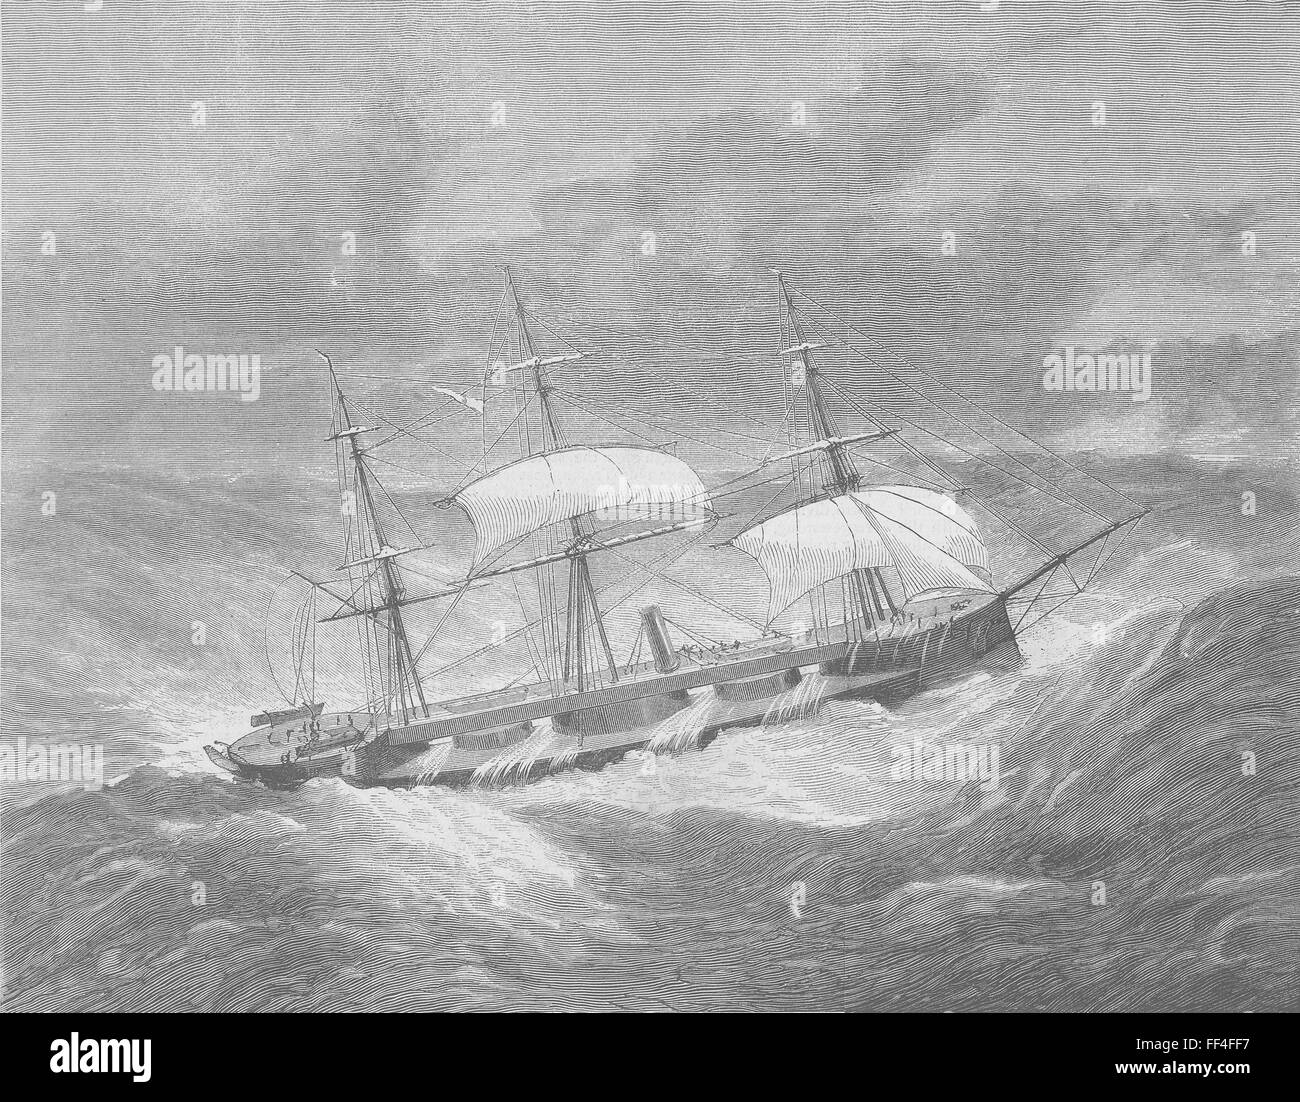 SHIPS Turret-Ship Capt, wind during cruise 1870. The Graphic - Stock Image